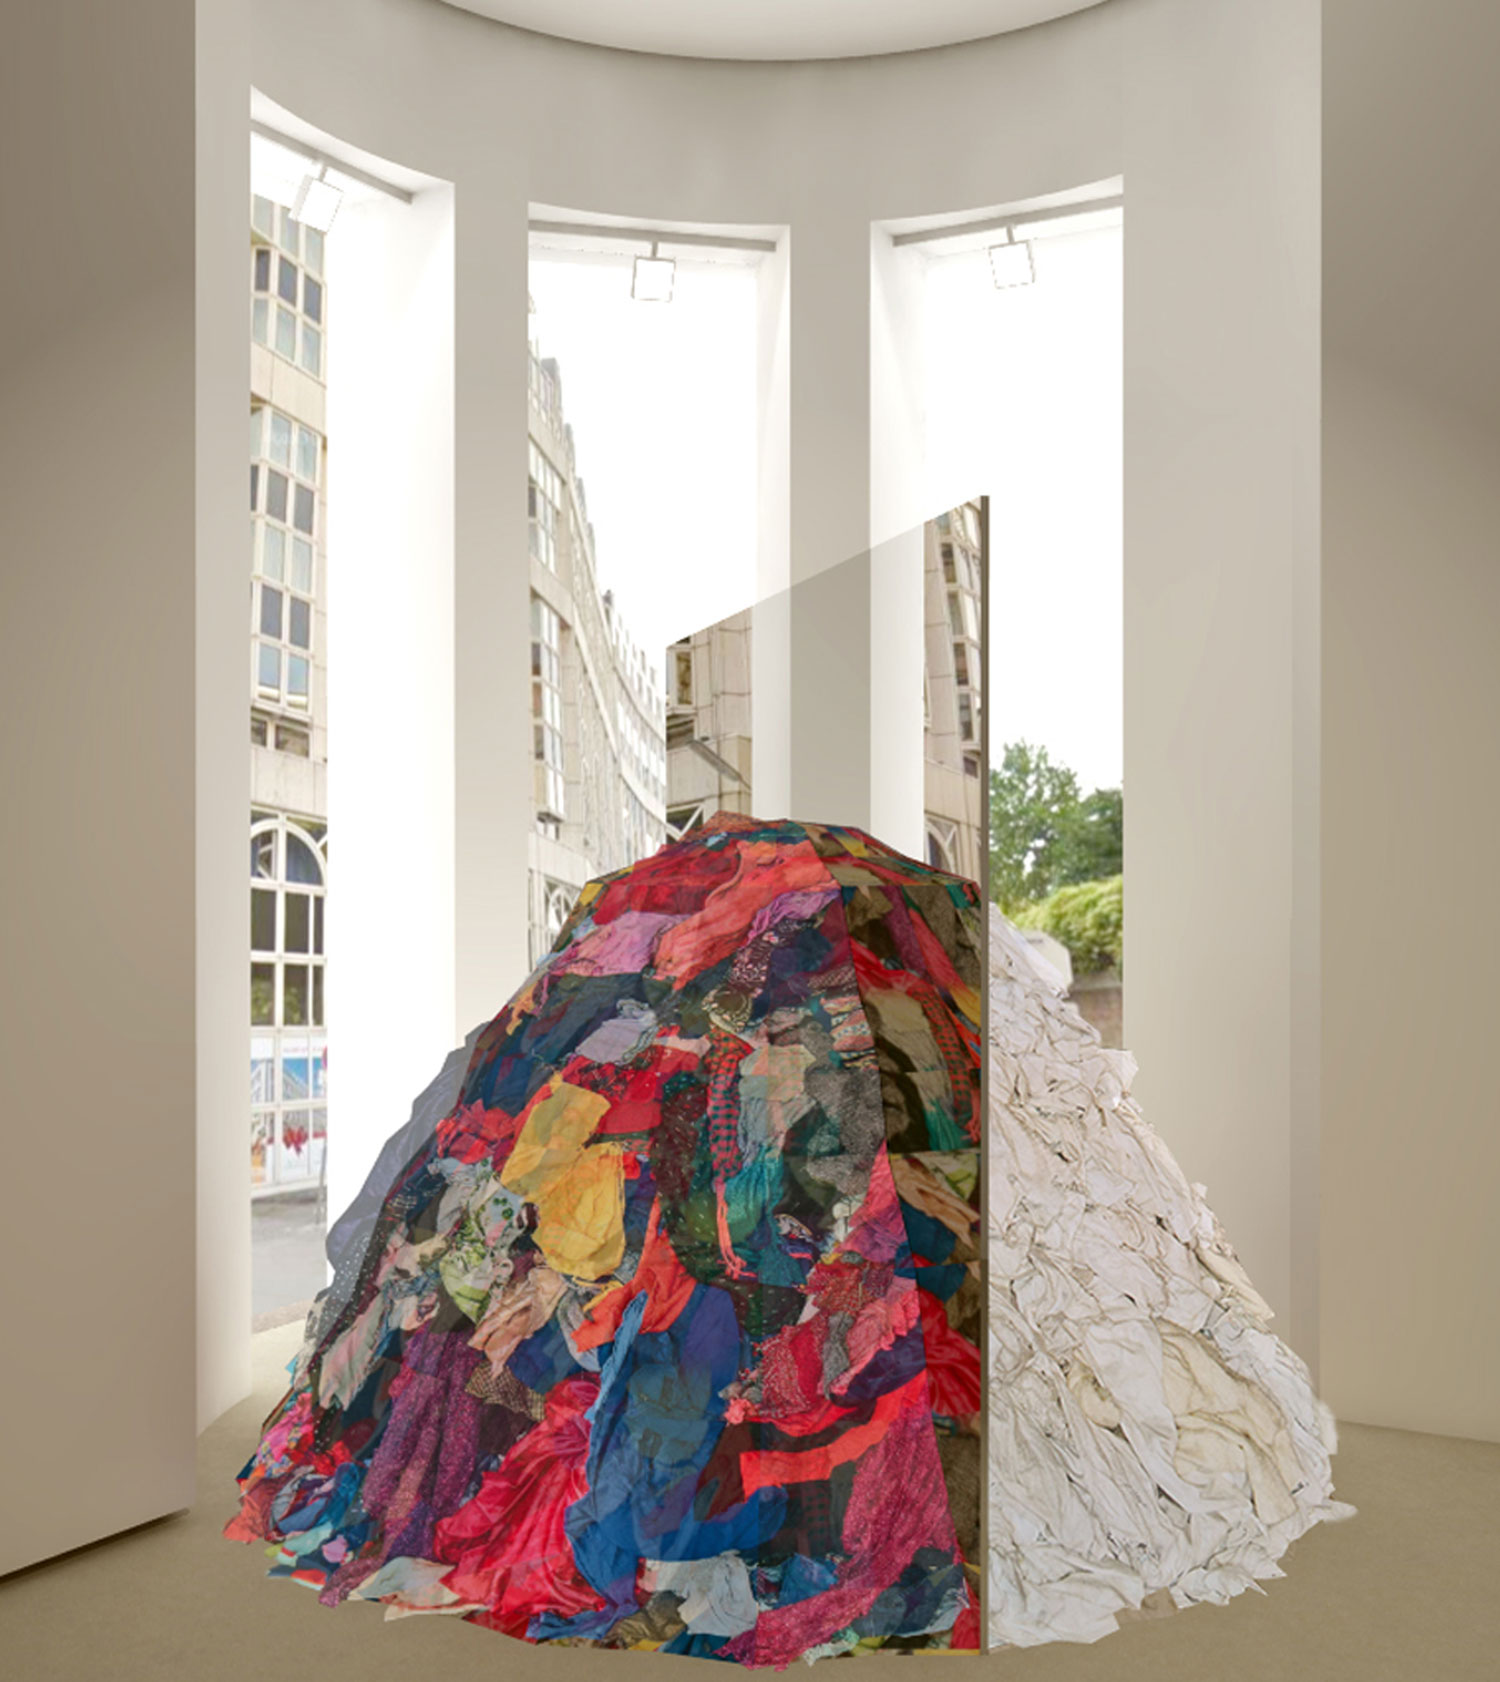 MICHELANGELO PISTOLETTO  METAMORFOSI (FOR VIENNA), 2018 Mirror, rags, site specific dimensions